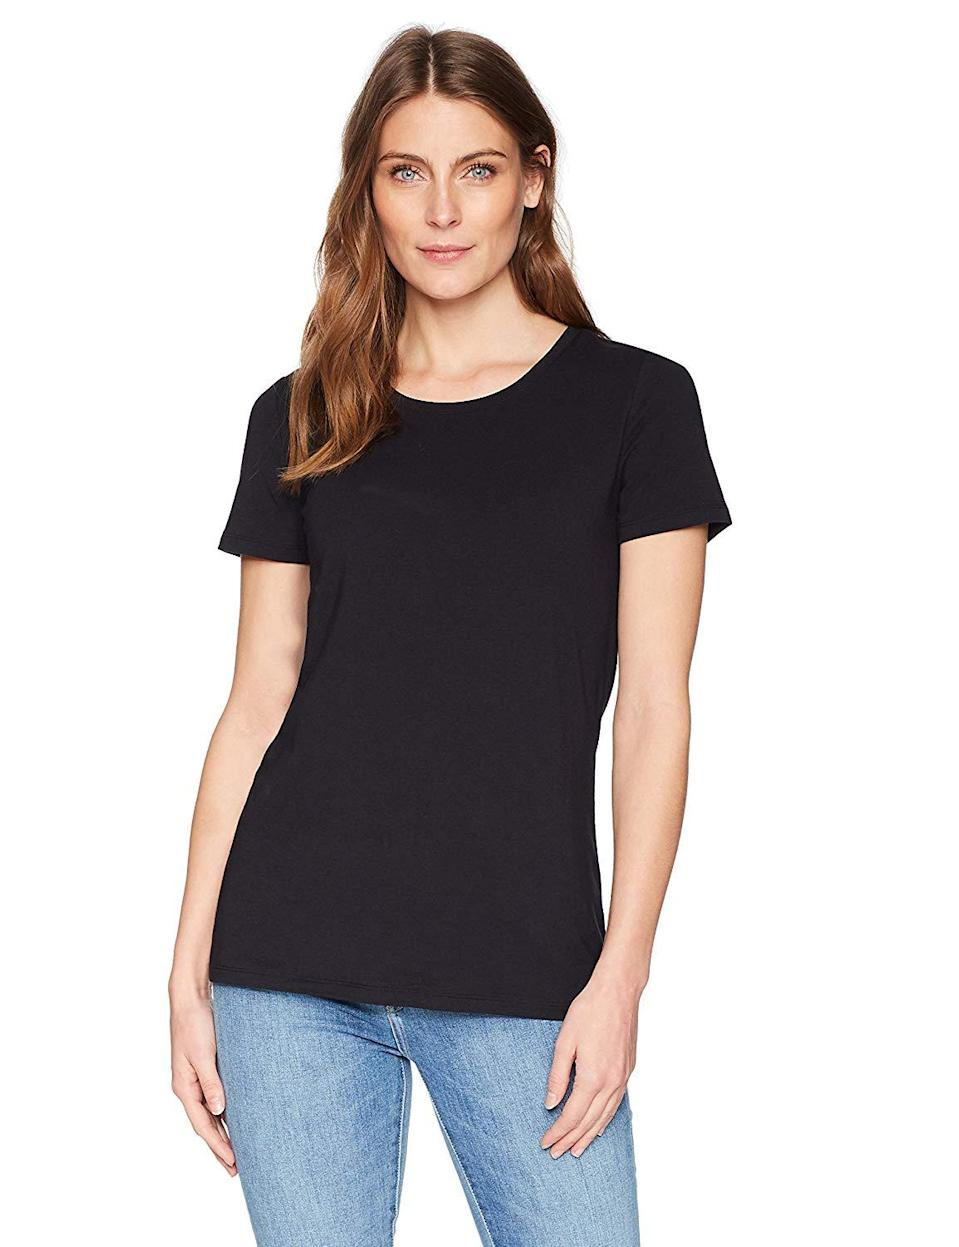 """<strong>The Made-For-Customers Tee</strong><br><br>Amazon started with customer reviews and feedback to create their wardrobe essentials line, so it's no surprise that most of the pieces in the offering are best-sellers — like this classic black T-shirt that's comfortable and soft.<br><br><strong>The Hype:</strong> 4.4 out of 5 stars on Amazon<br><br><strong>What They're Saying:</strong> """"I absolutely love them. I had read a lot of reviews, but I was still genuinely surprised at the quality of the material as soon as I opened the package. The material has some weight to it — doesn't feel cheap, thin or flimsy at all, and is soft to the touch."""" - Vi, Amazon Review<br><br><strong>Amazon Essentials</strong> 2-Pack Short-Sleeve Crewneck Solid T-Shirt, $, available at <a href=""""https://www.amazon.com/Amazon-Essentials-Short-Sleeve-Crewneck-T-Shirt/dp/B07762TMMM"""" rel=""""nofollow noopener"""" target=""""_blank"""" data-ylk=""""slk:Amazon"""" class=""""link rapid-noclick-resp"""">Amazon</a>"""